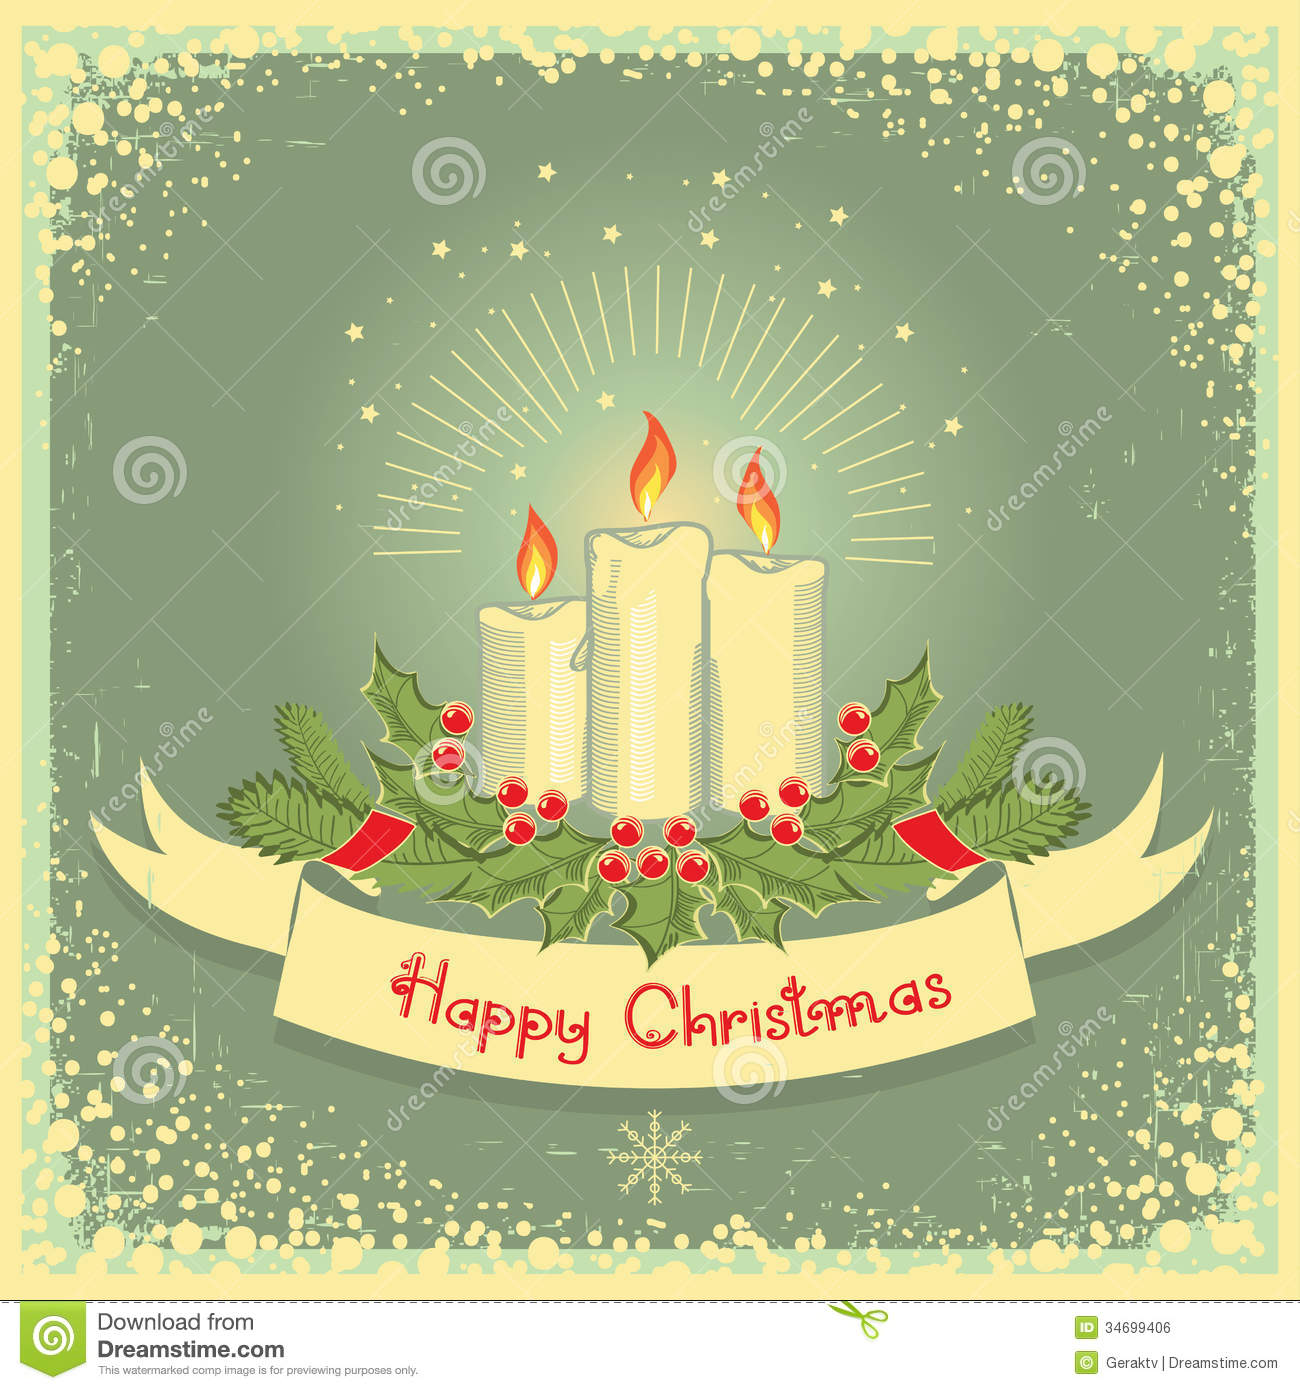 Christmas Card With Candles Royalty Free Stock Image - Image: 34699406